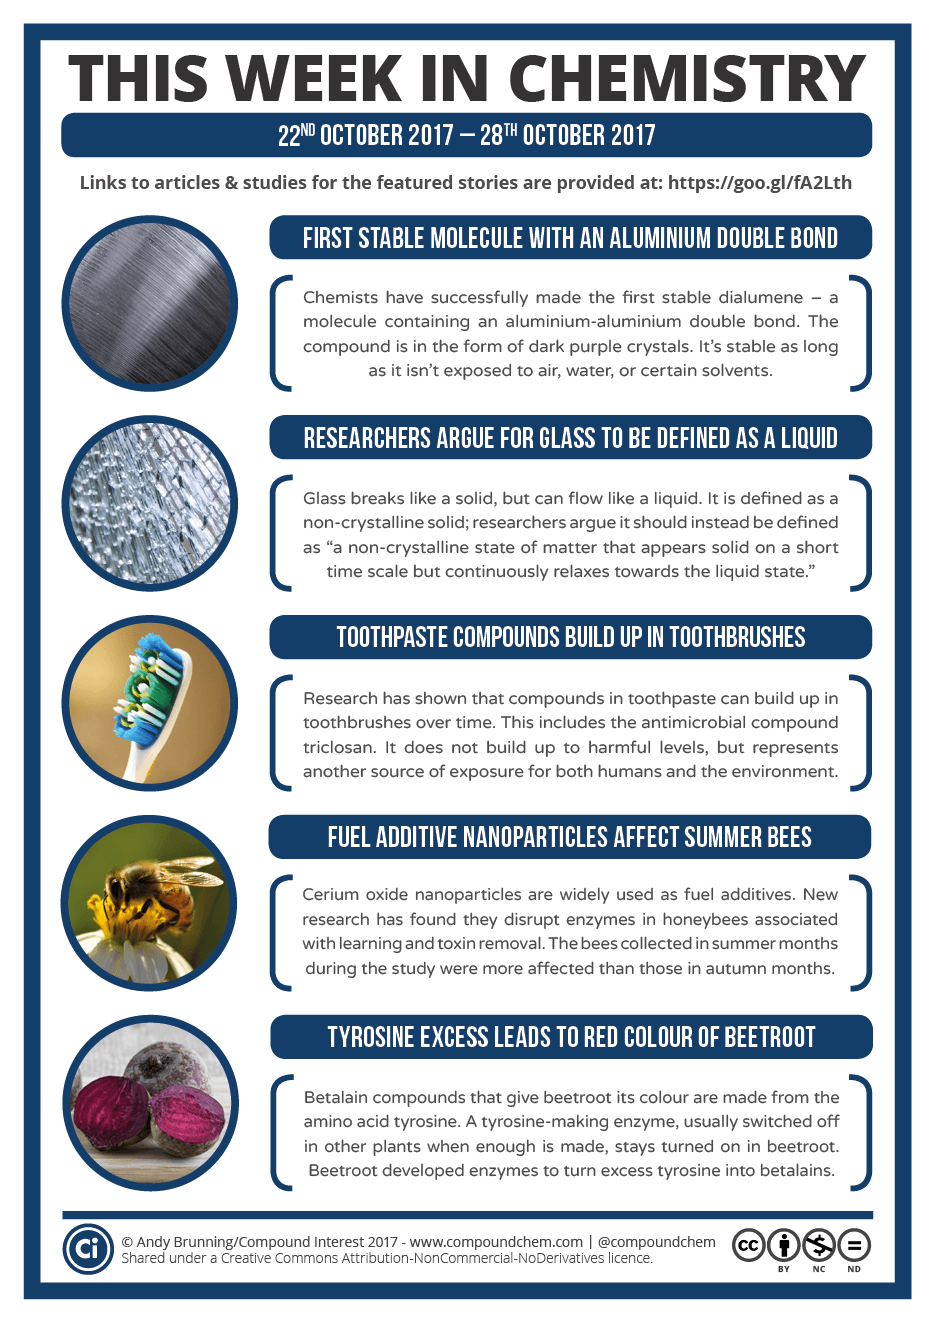 this week in chemistry – glass definition argument, and beetroot